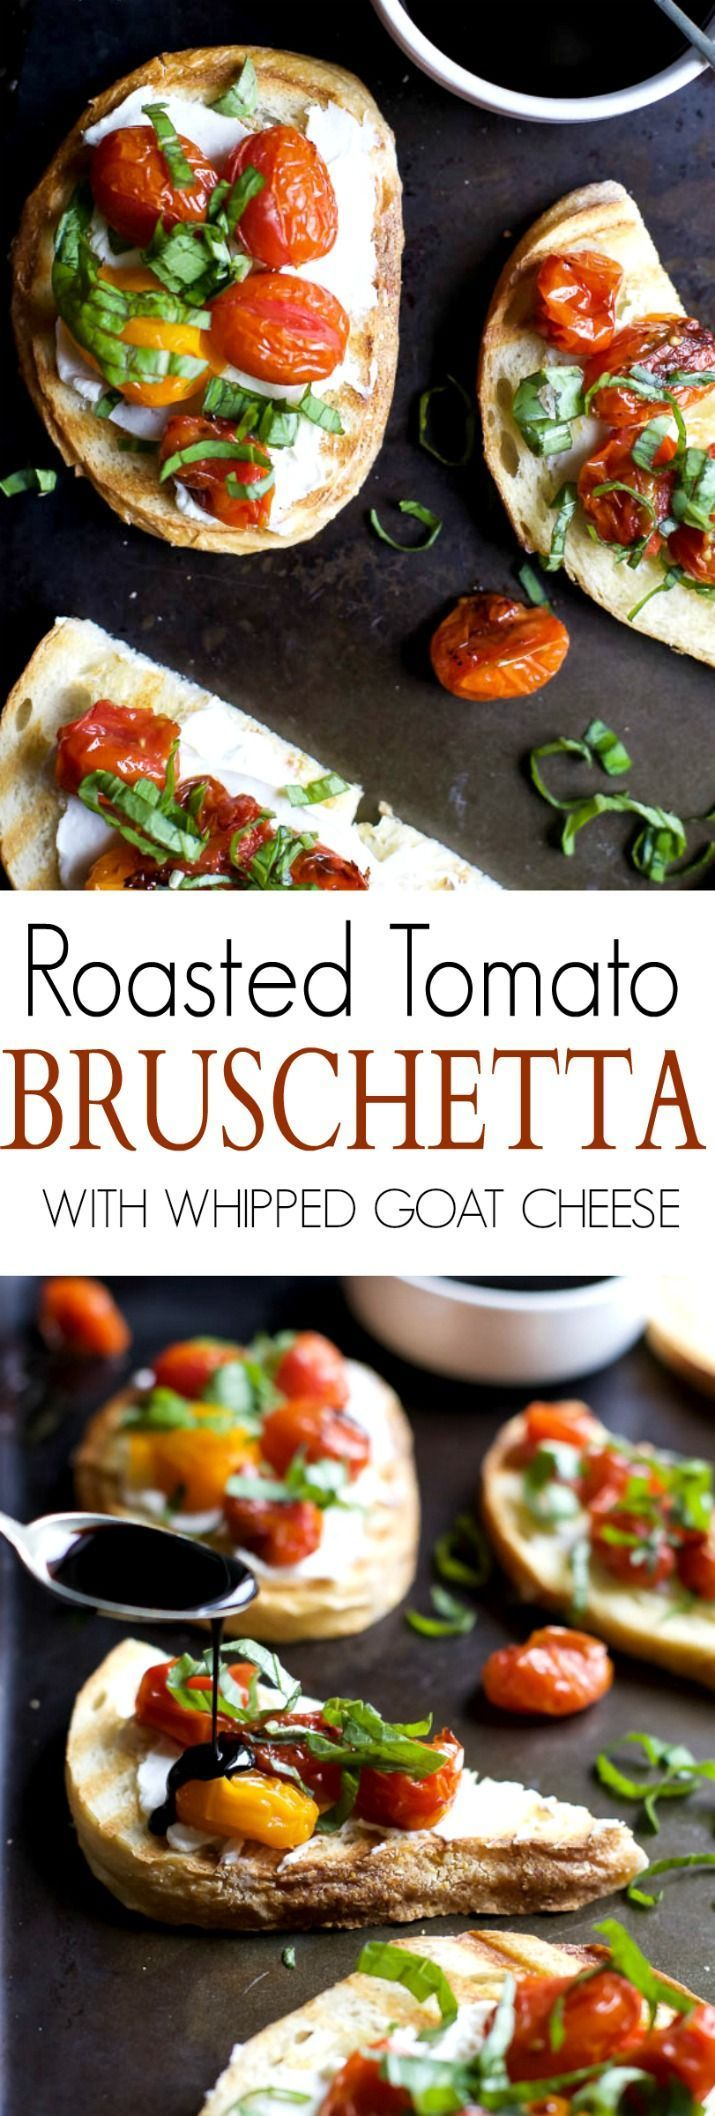 Roasted Tomato Bruschetta with Whipped Goat and a Balsamic Reduction Drizzle - a... Roasted Tomato Bruschetta with Whipped Goat and a Balsamic Reduction Drizzle - a...